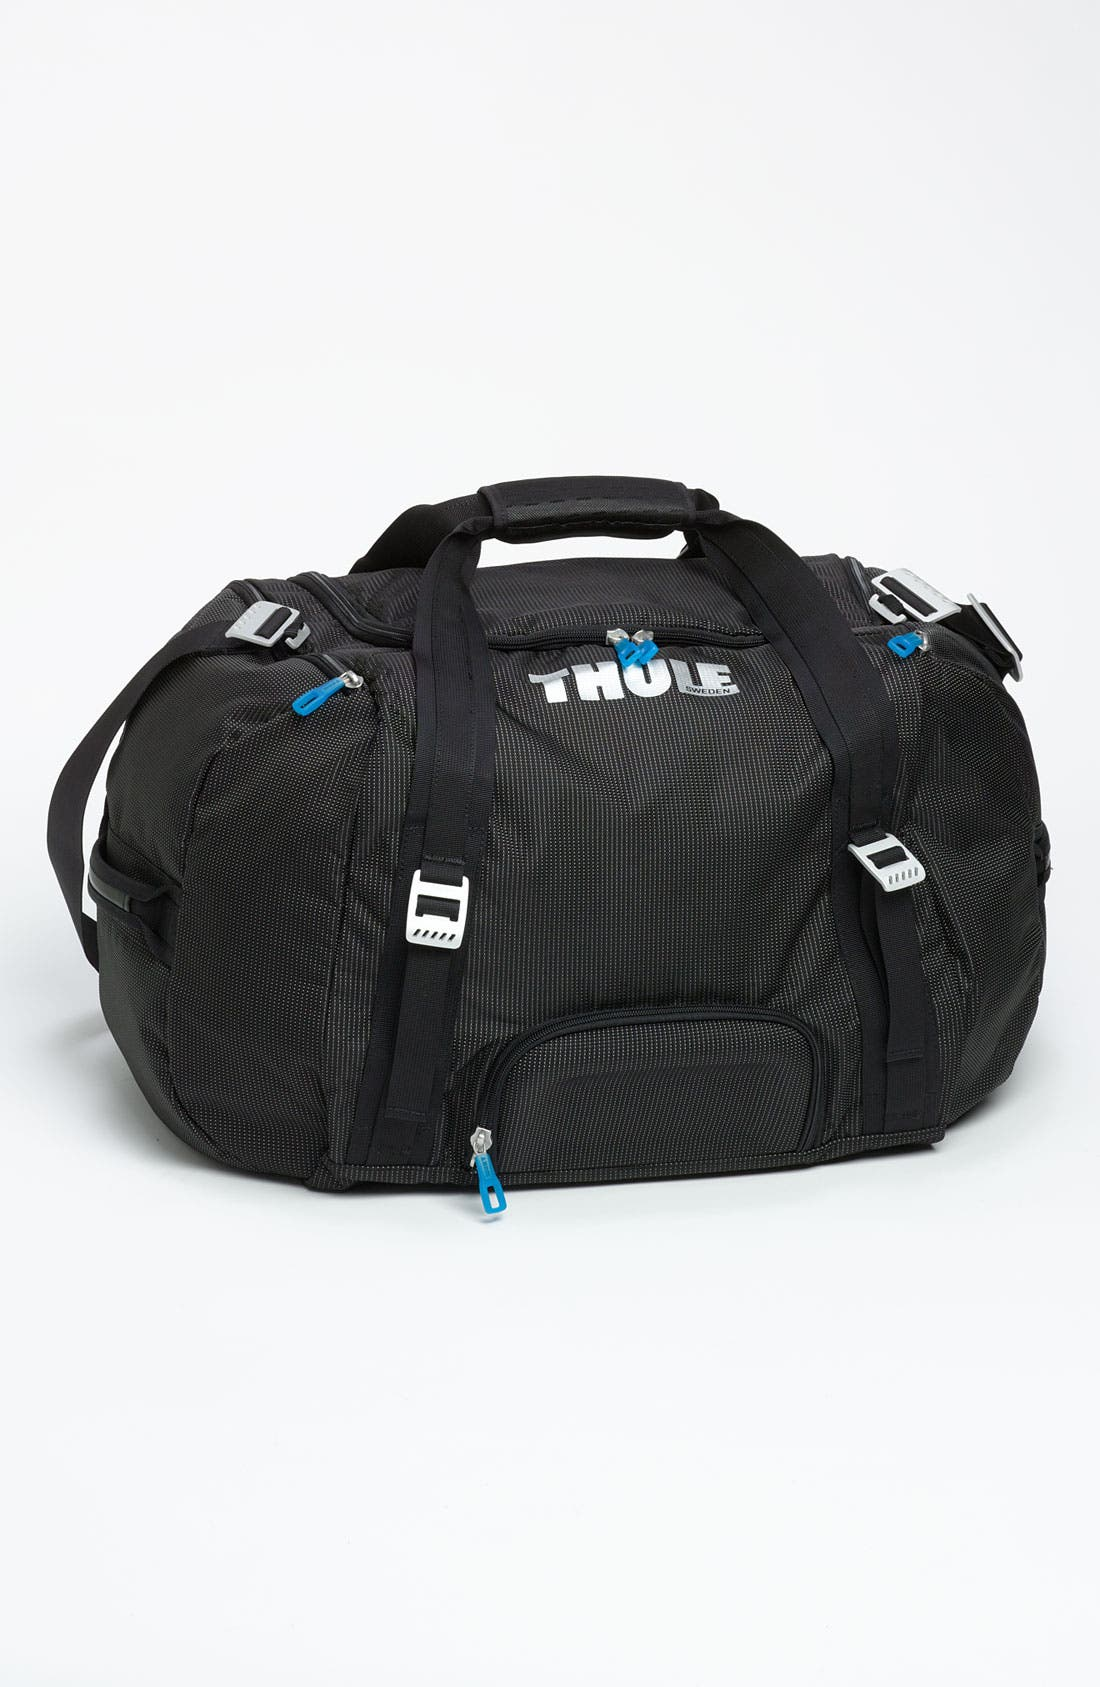 Alternate Image 1 Selected - Thule Duffel Bag (70 Liter)